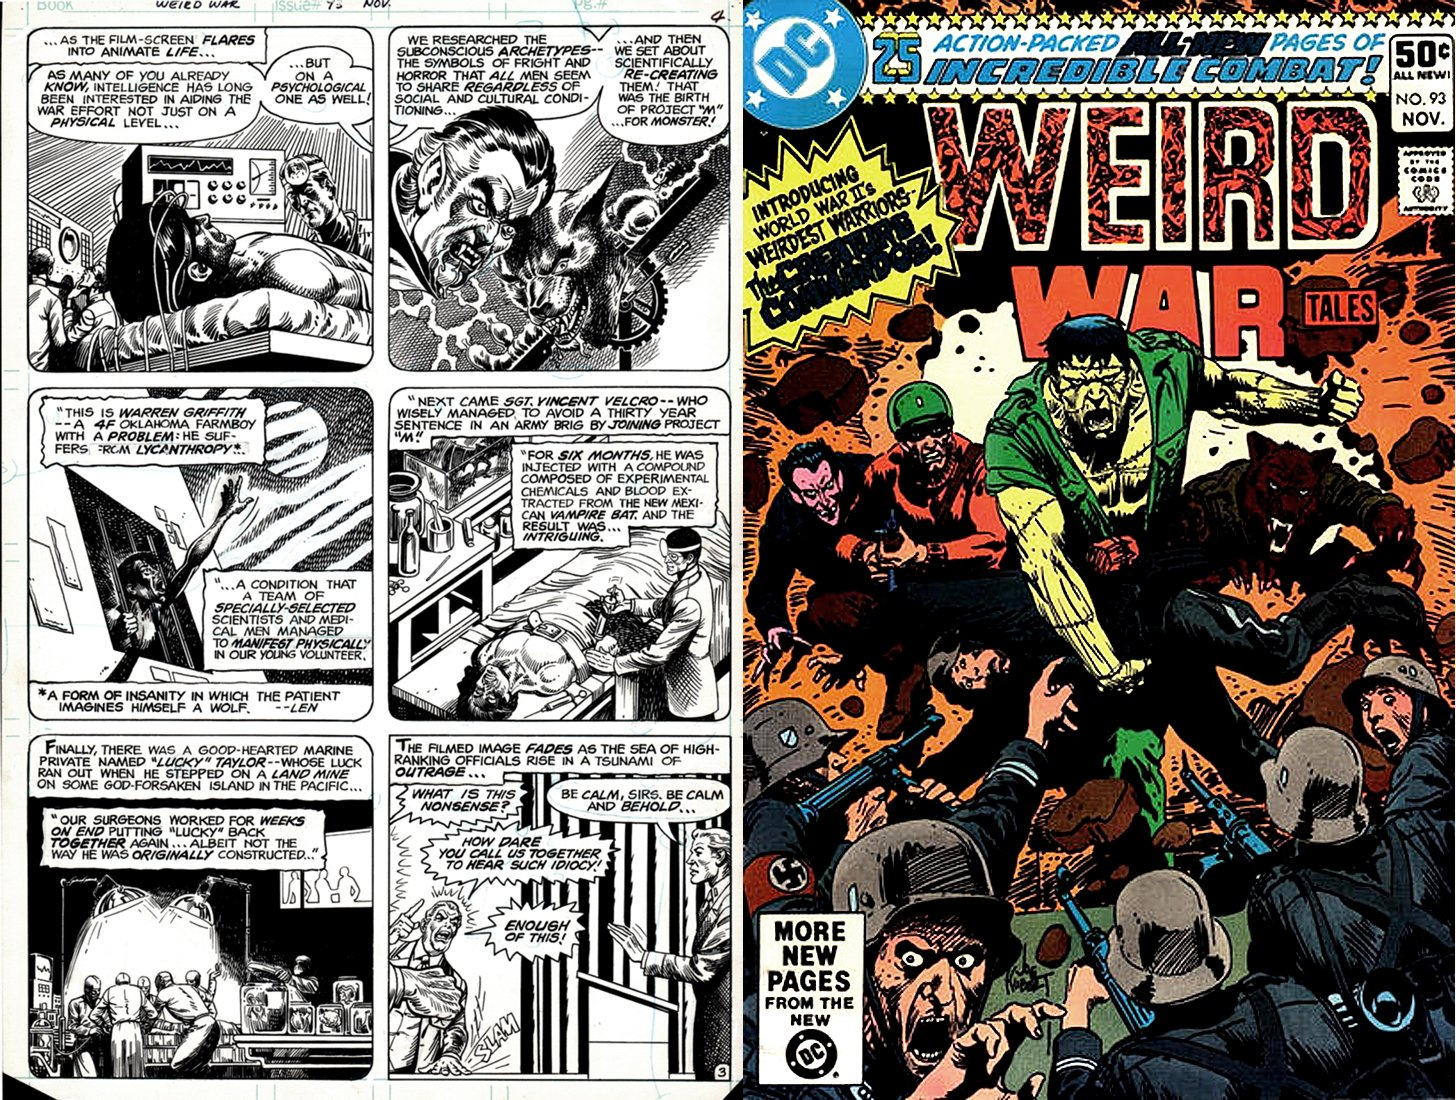 Weird War Tales #93 p 3 (SOLD LIVE ON 'DUELING DEALERS OF COMIC ART' EPISODE #31 PODCAST ON 8-14-2021(RE-WATCH THIS FUNNY ART SELLING SHOW HERE)